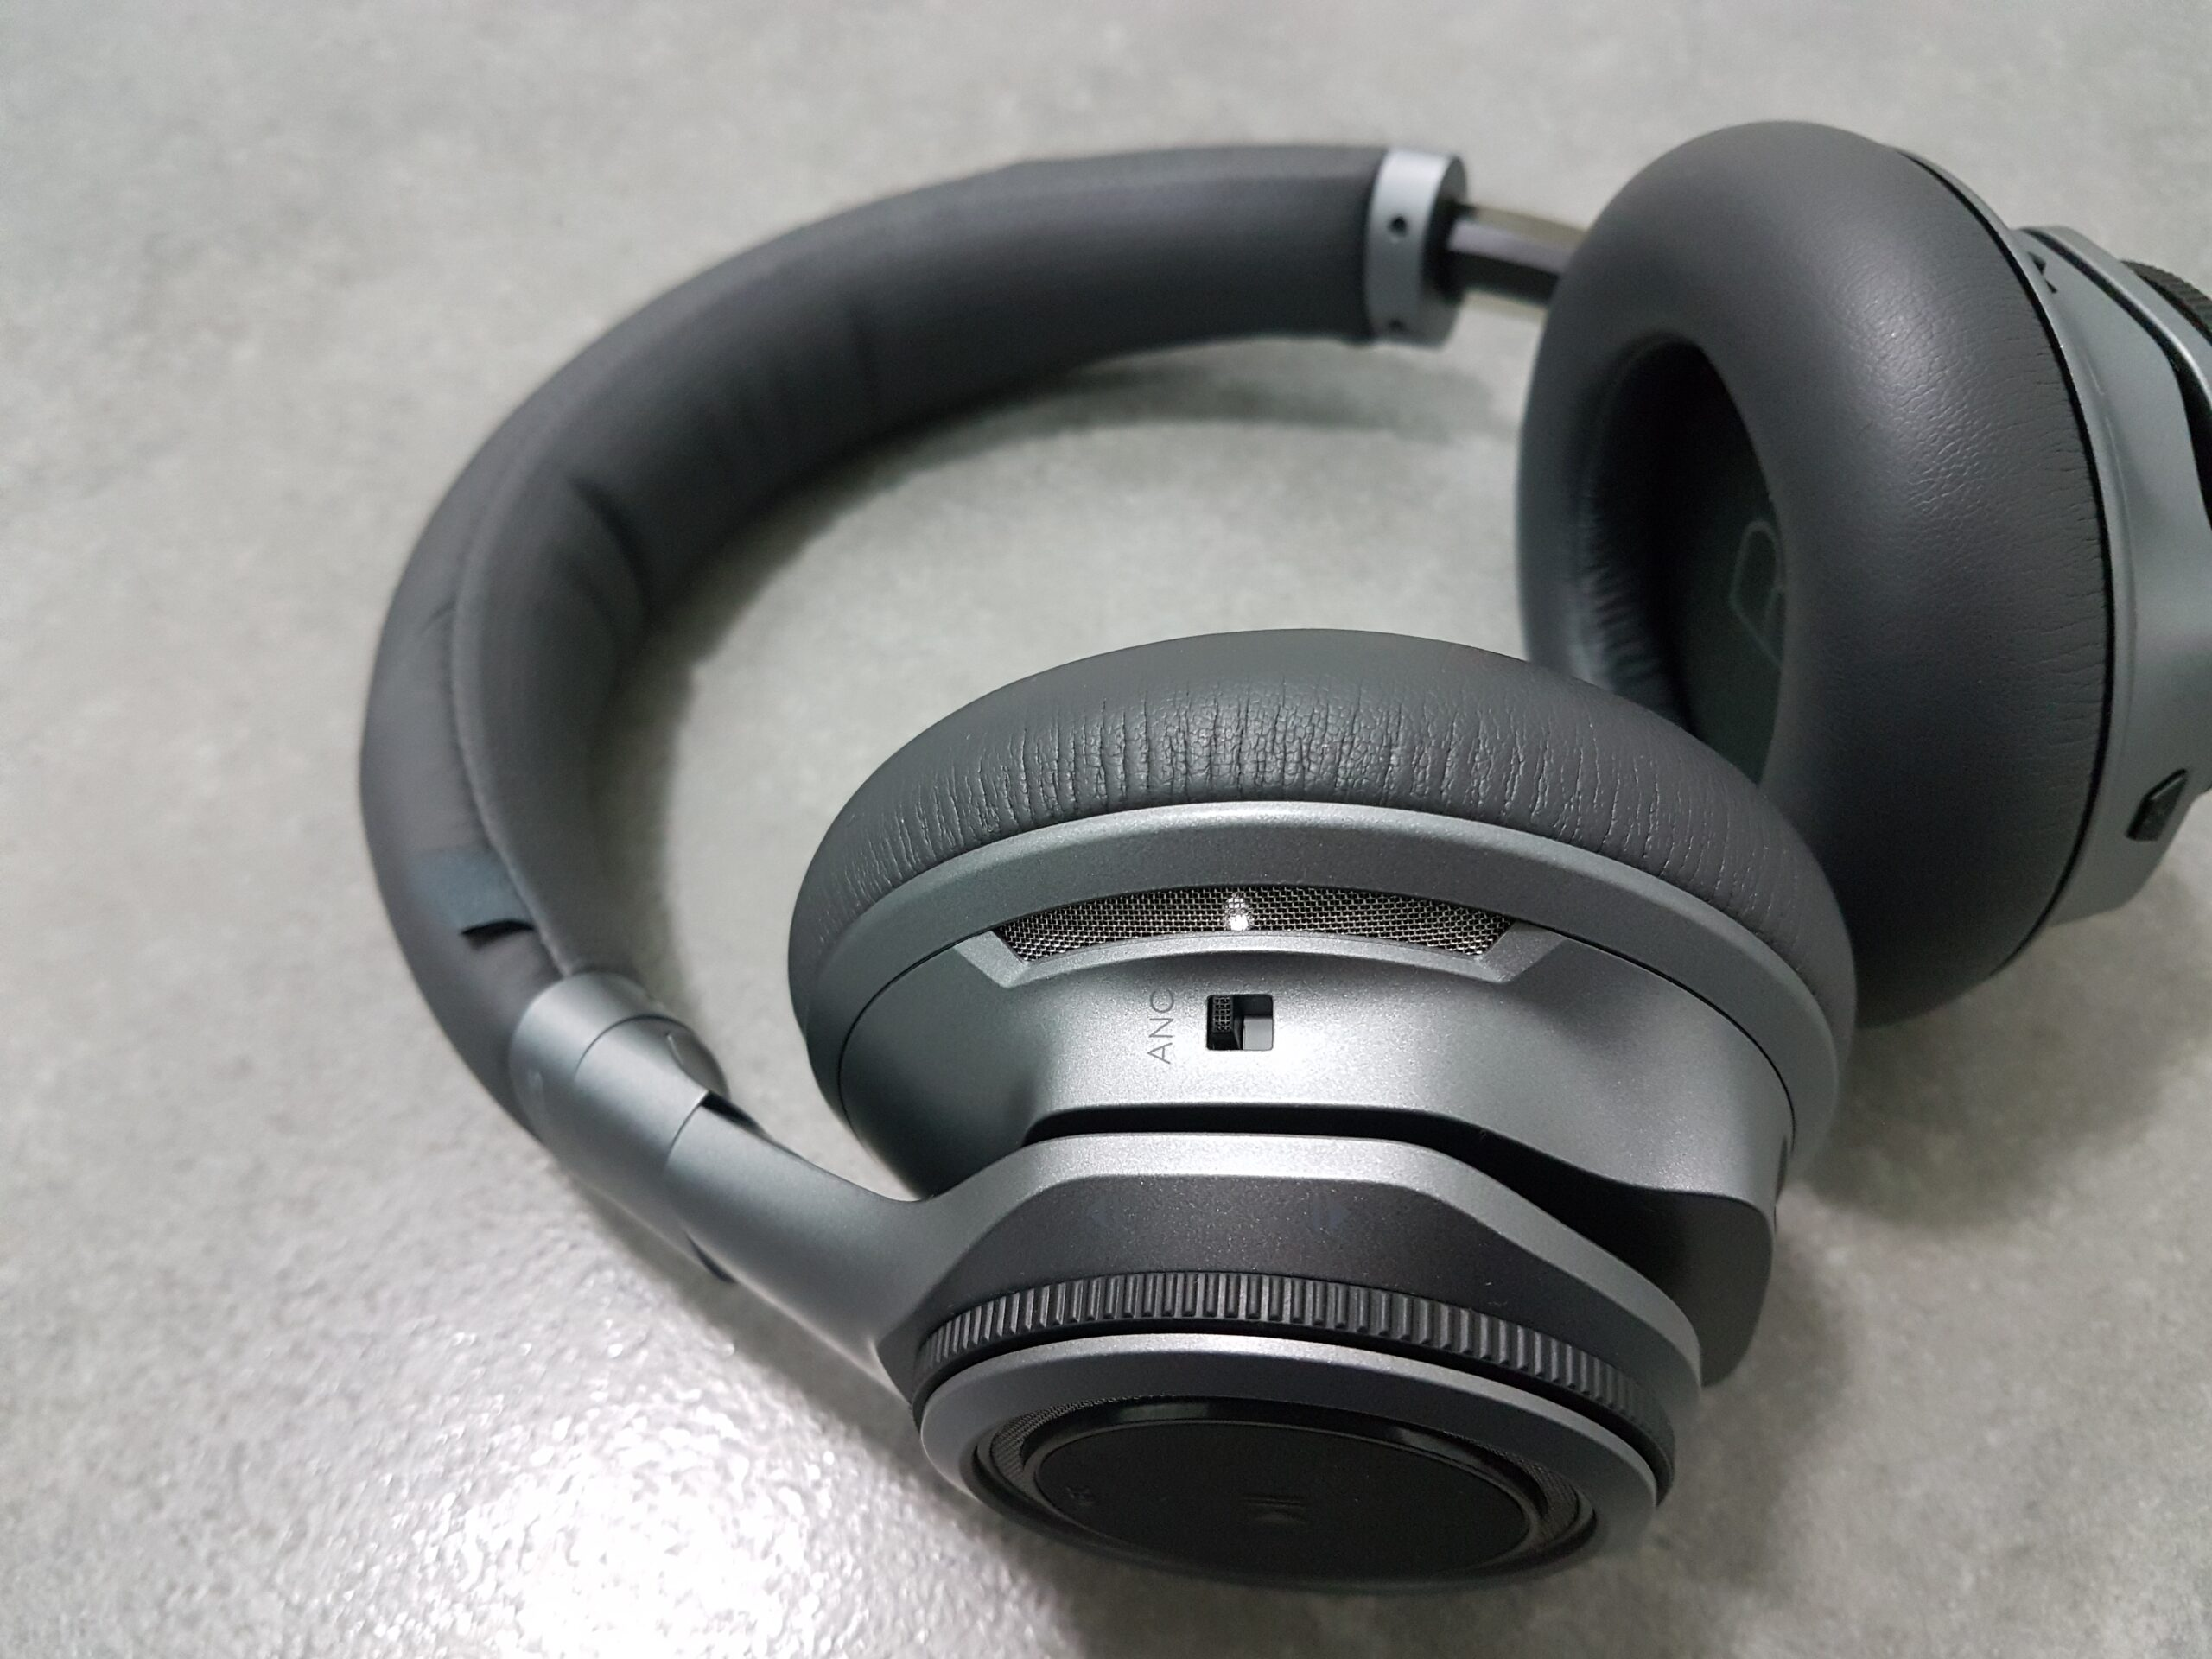 Update Firmware Through Plantronics Hub-findheadsets